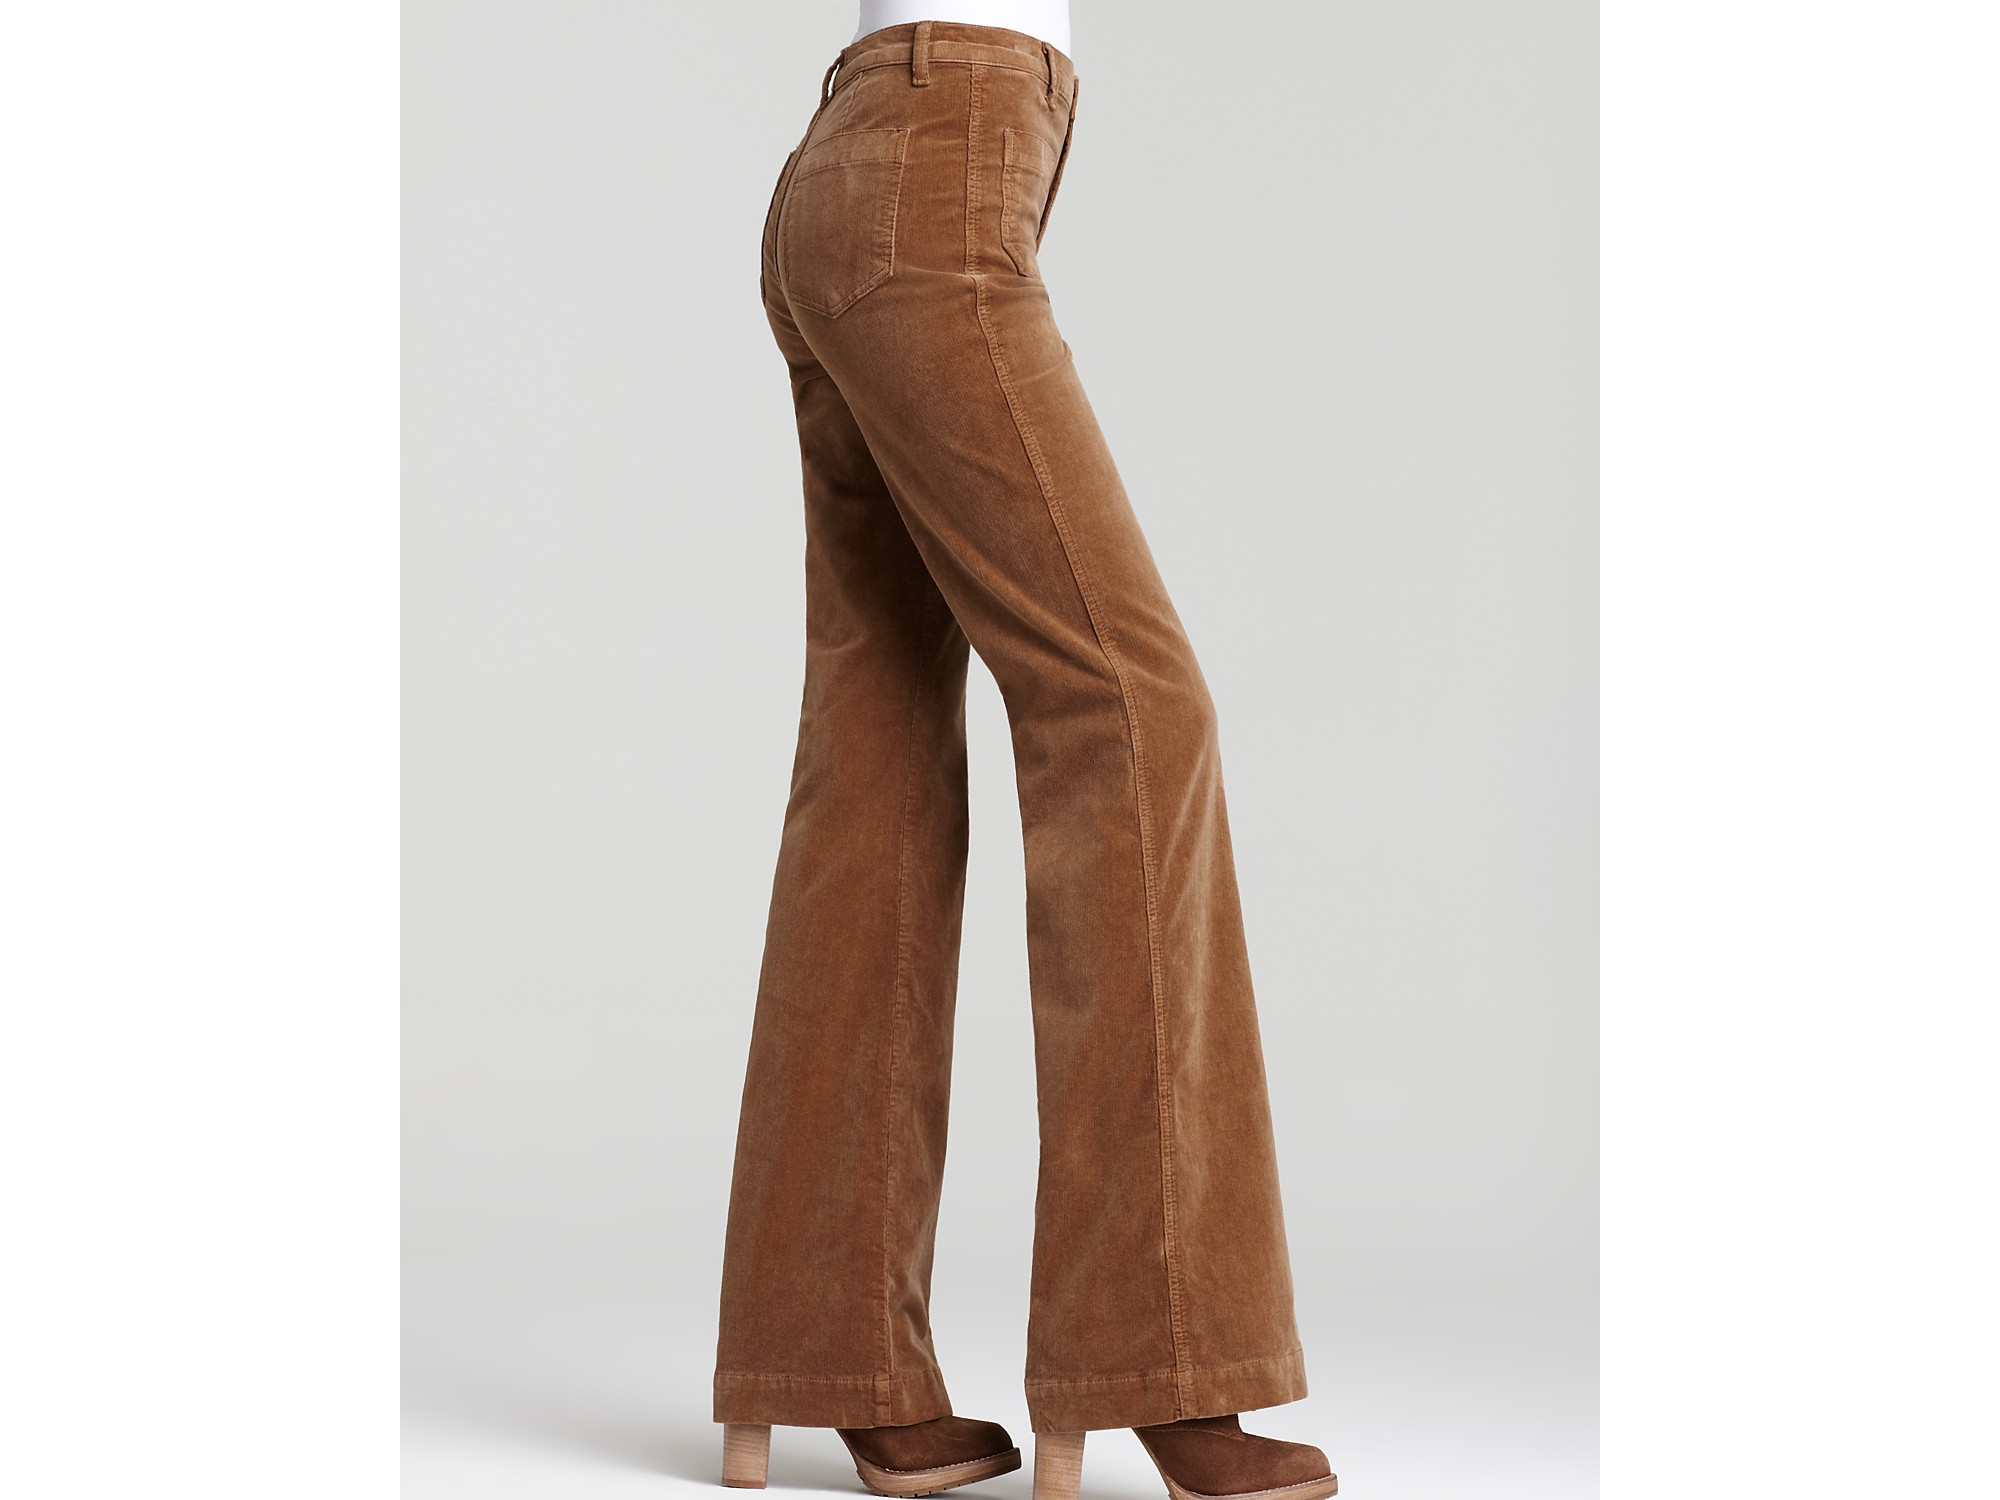 J brand Ali High Rise Wide Leg Corduroy Pants in Natural | Lyst